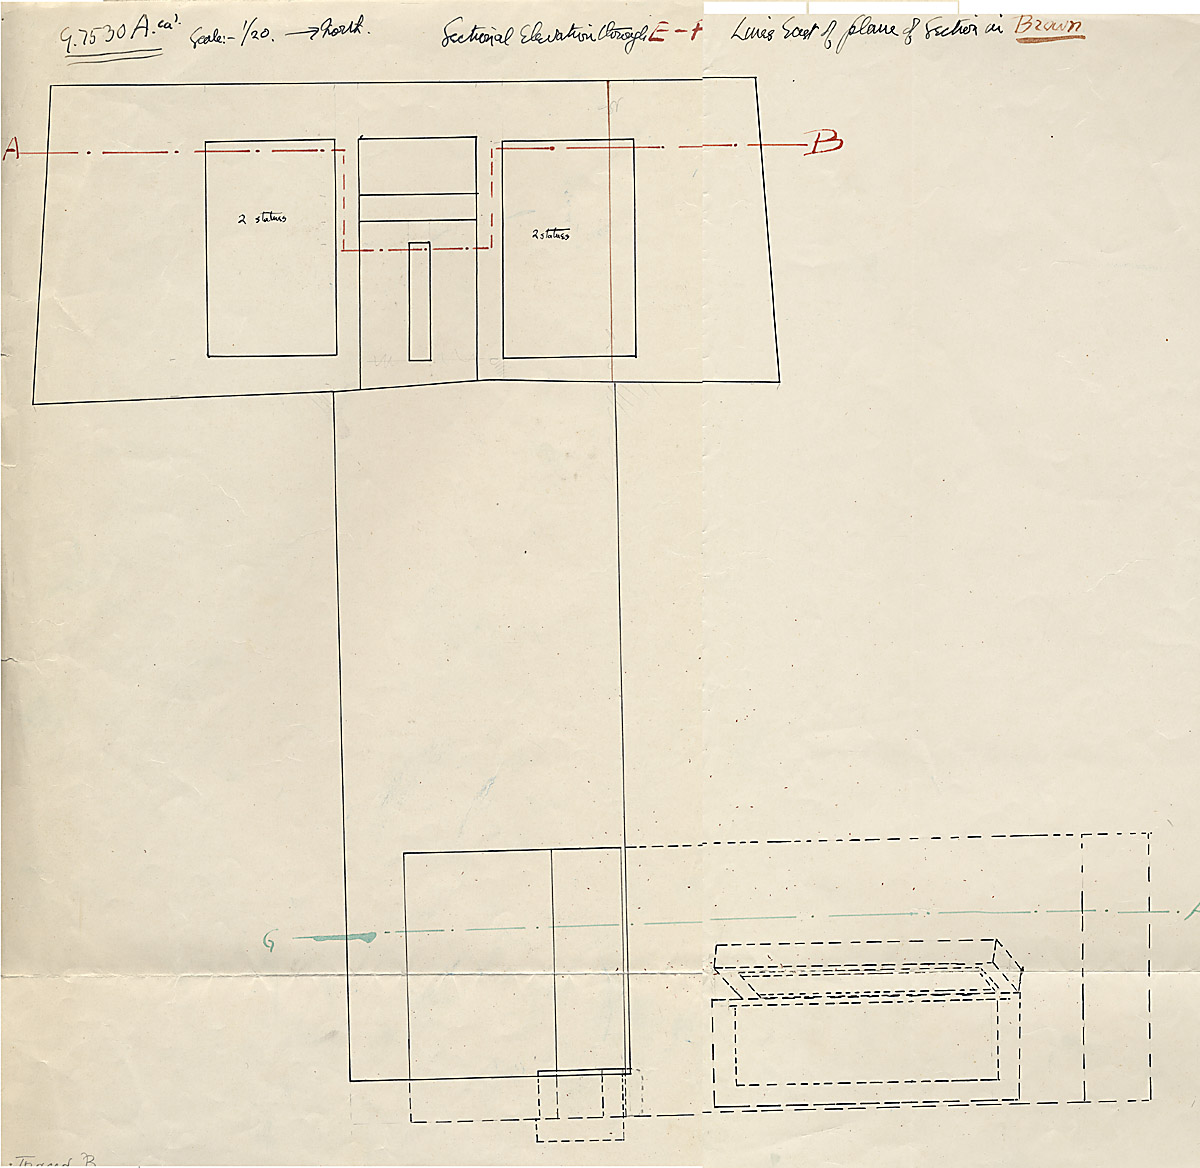 Maps and plans: G 7530-7540: G 7530, Section through west room (room b) and Shaft A